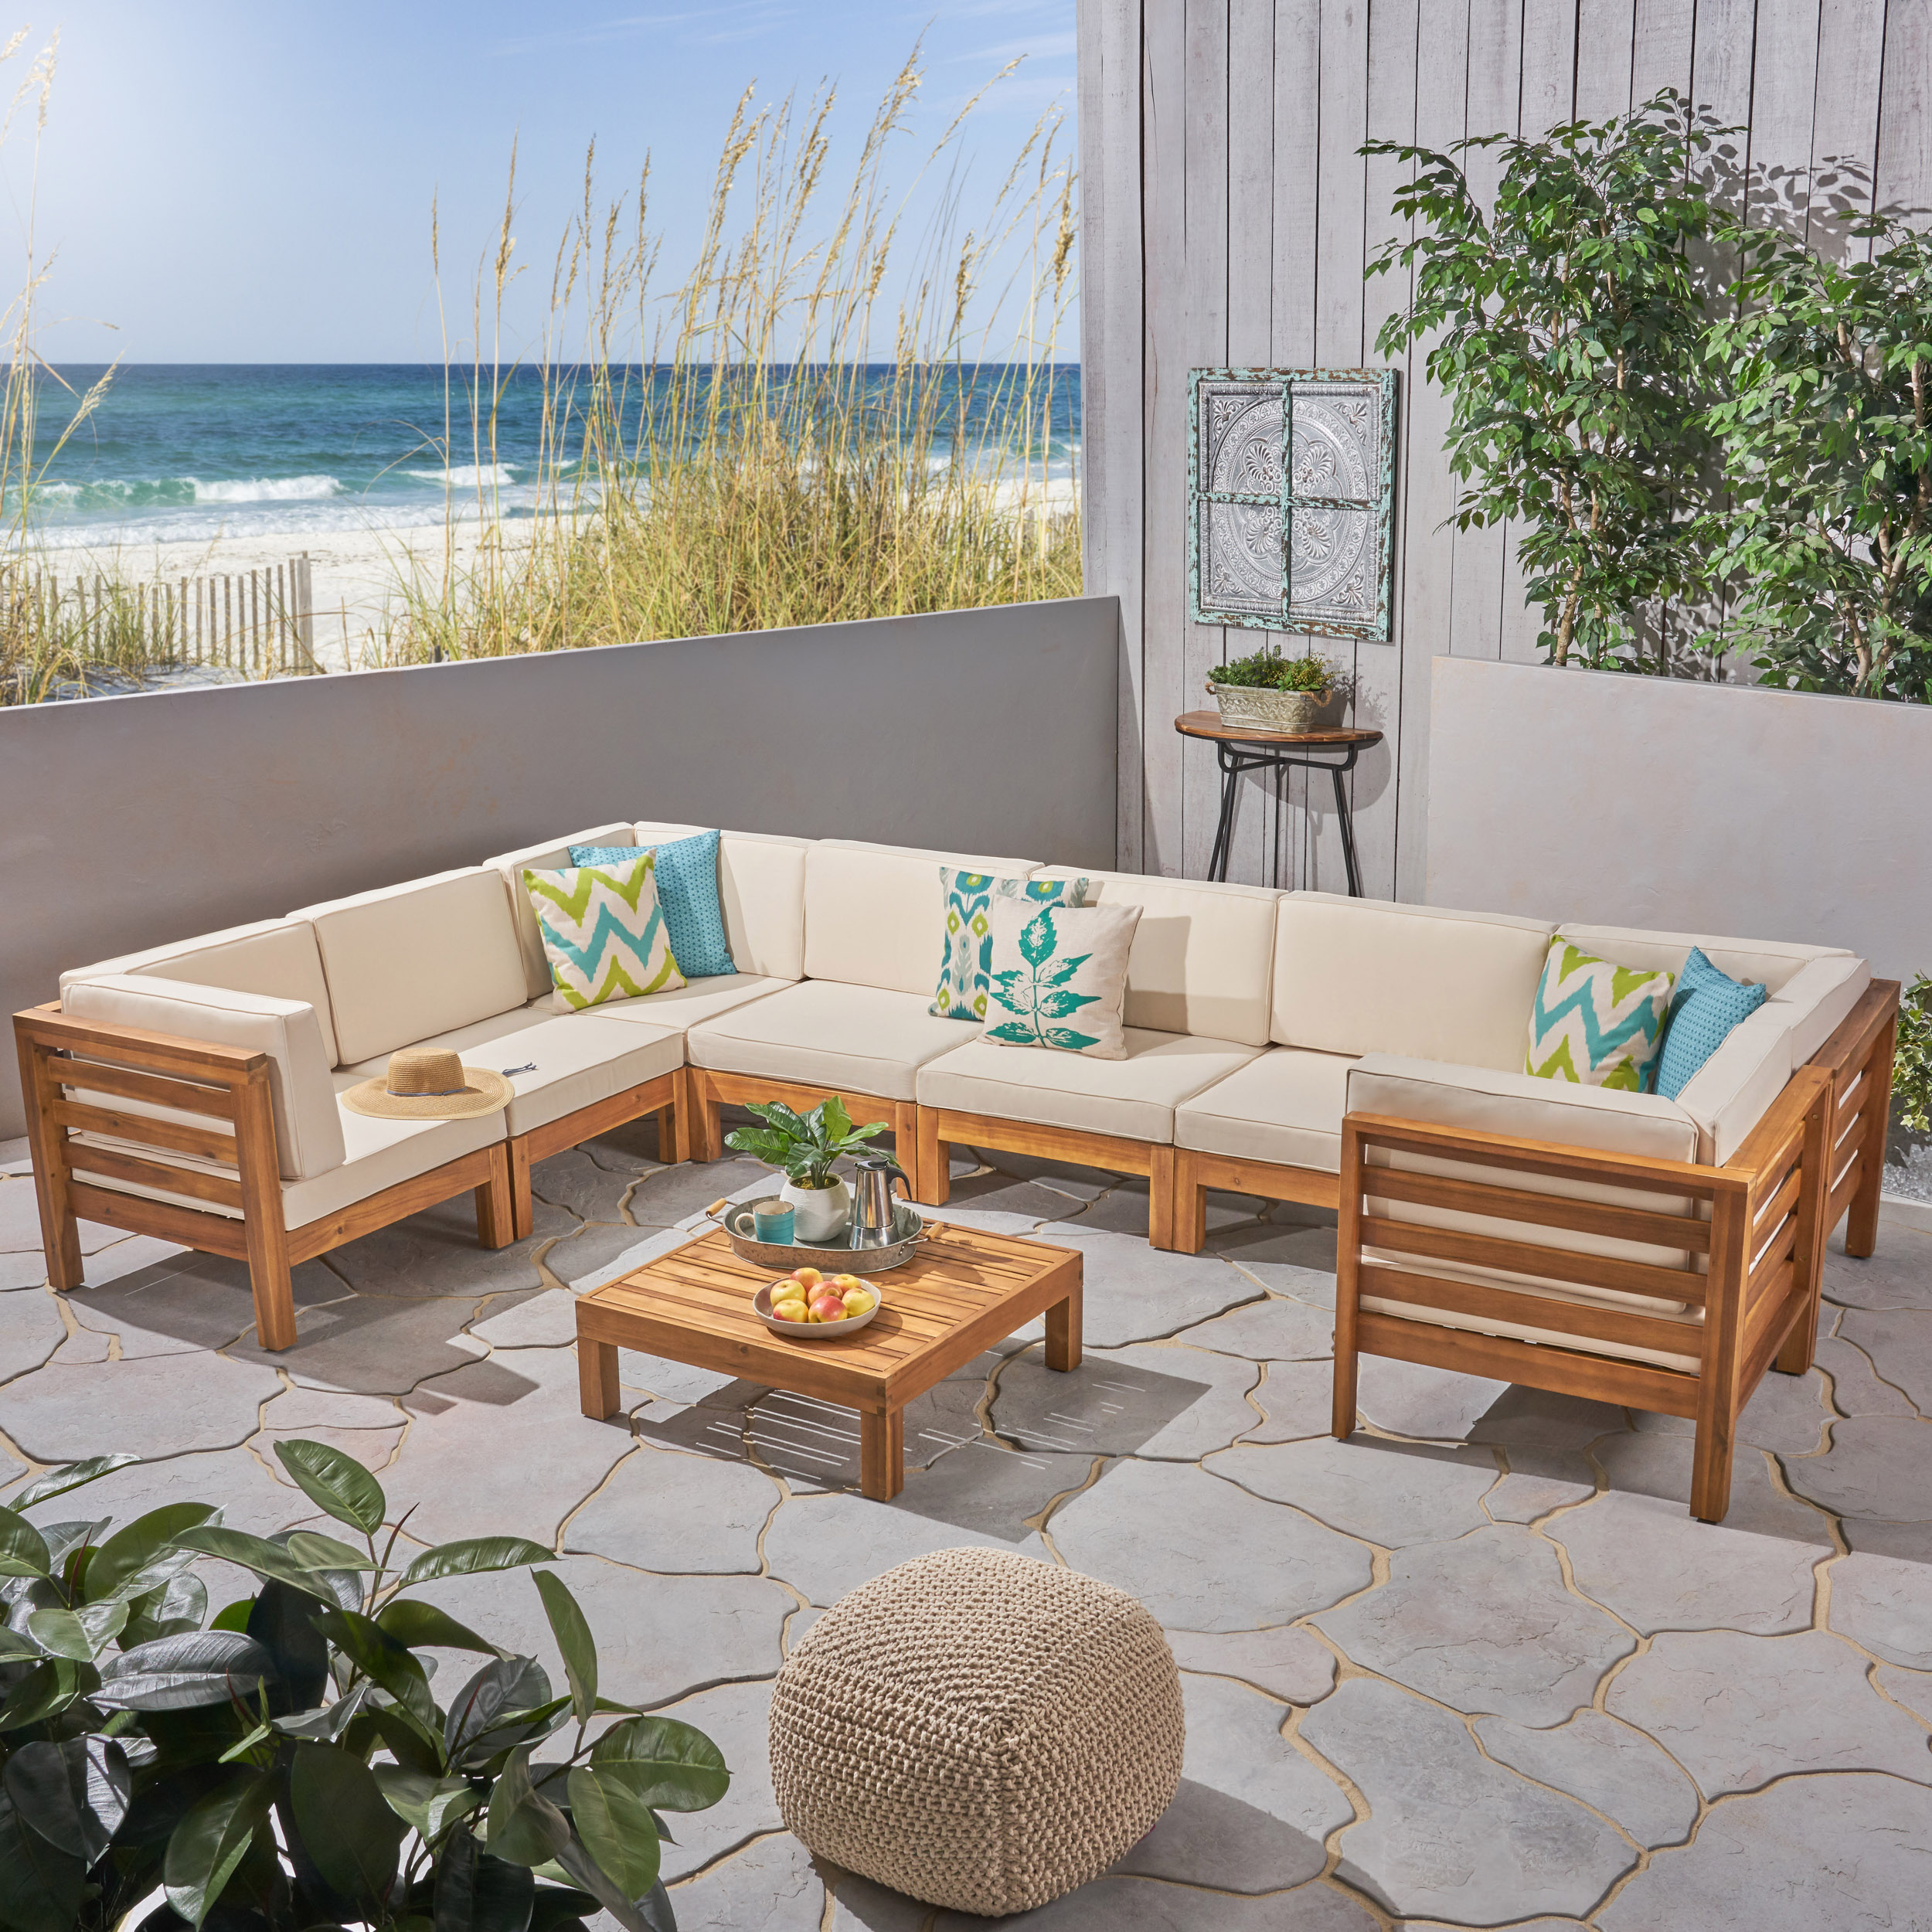 Frankie Outdoor 9 Piece Acacia Wood U-Shaped Sectional Sofa Set with Coffee Table and Cushions, Teak, Beige